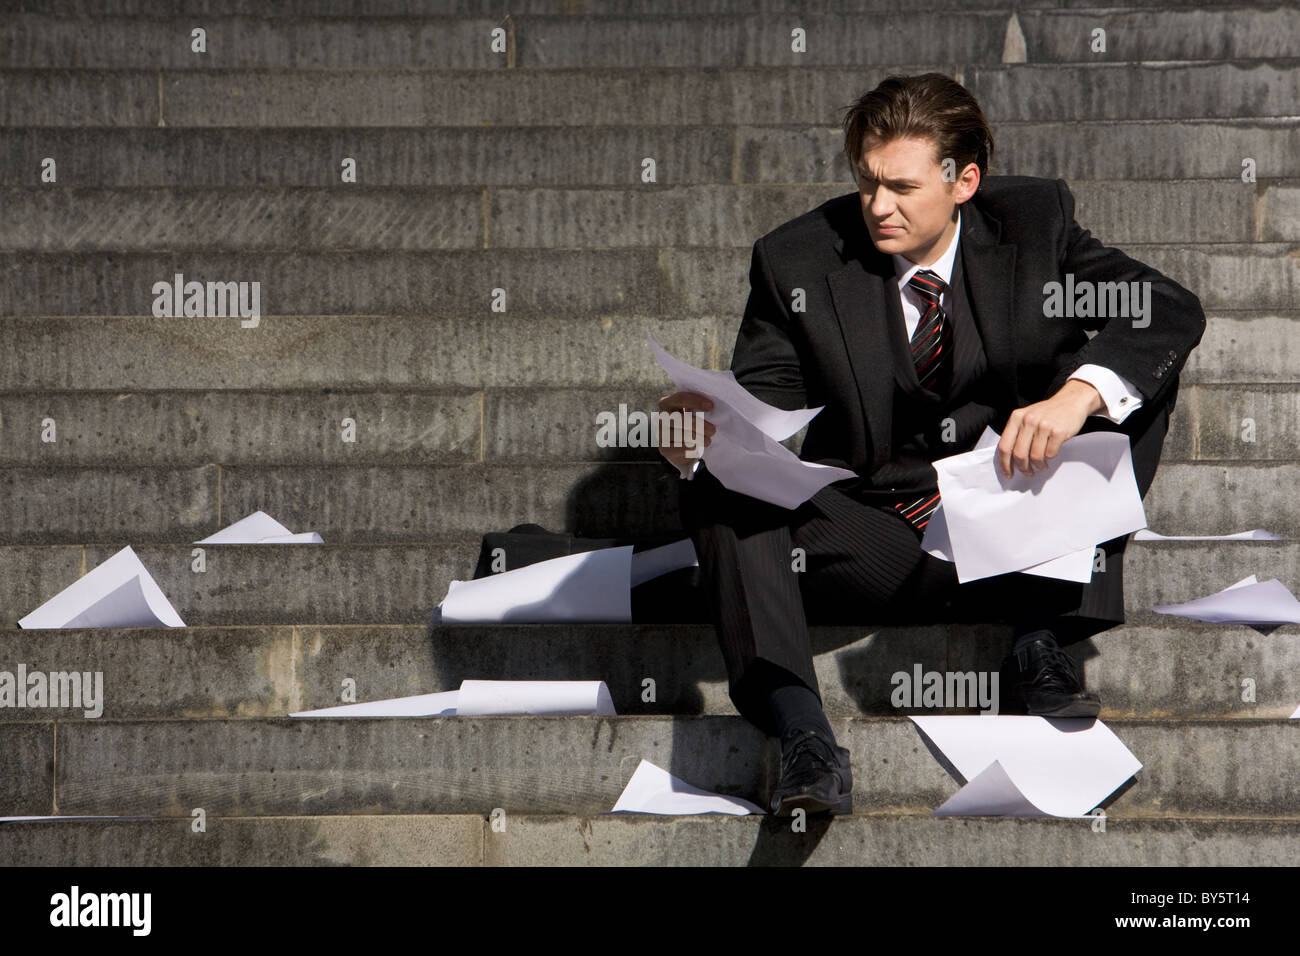 Unhappy businessman suffering from world financial crisis while sitting on stairs - Stock Image